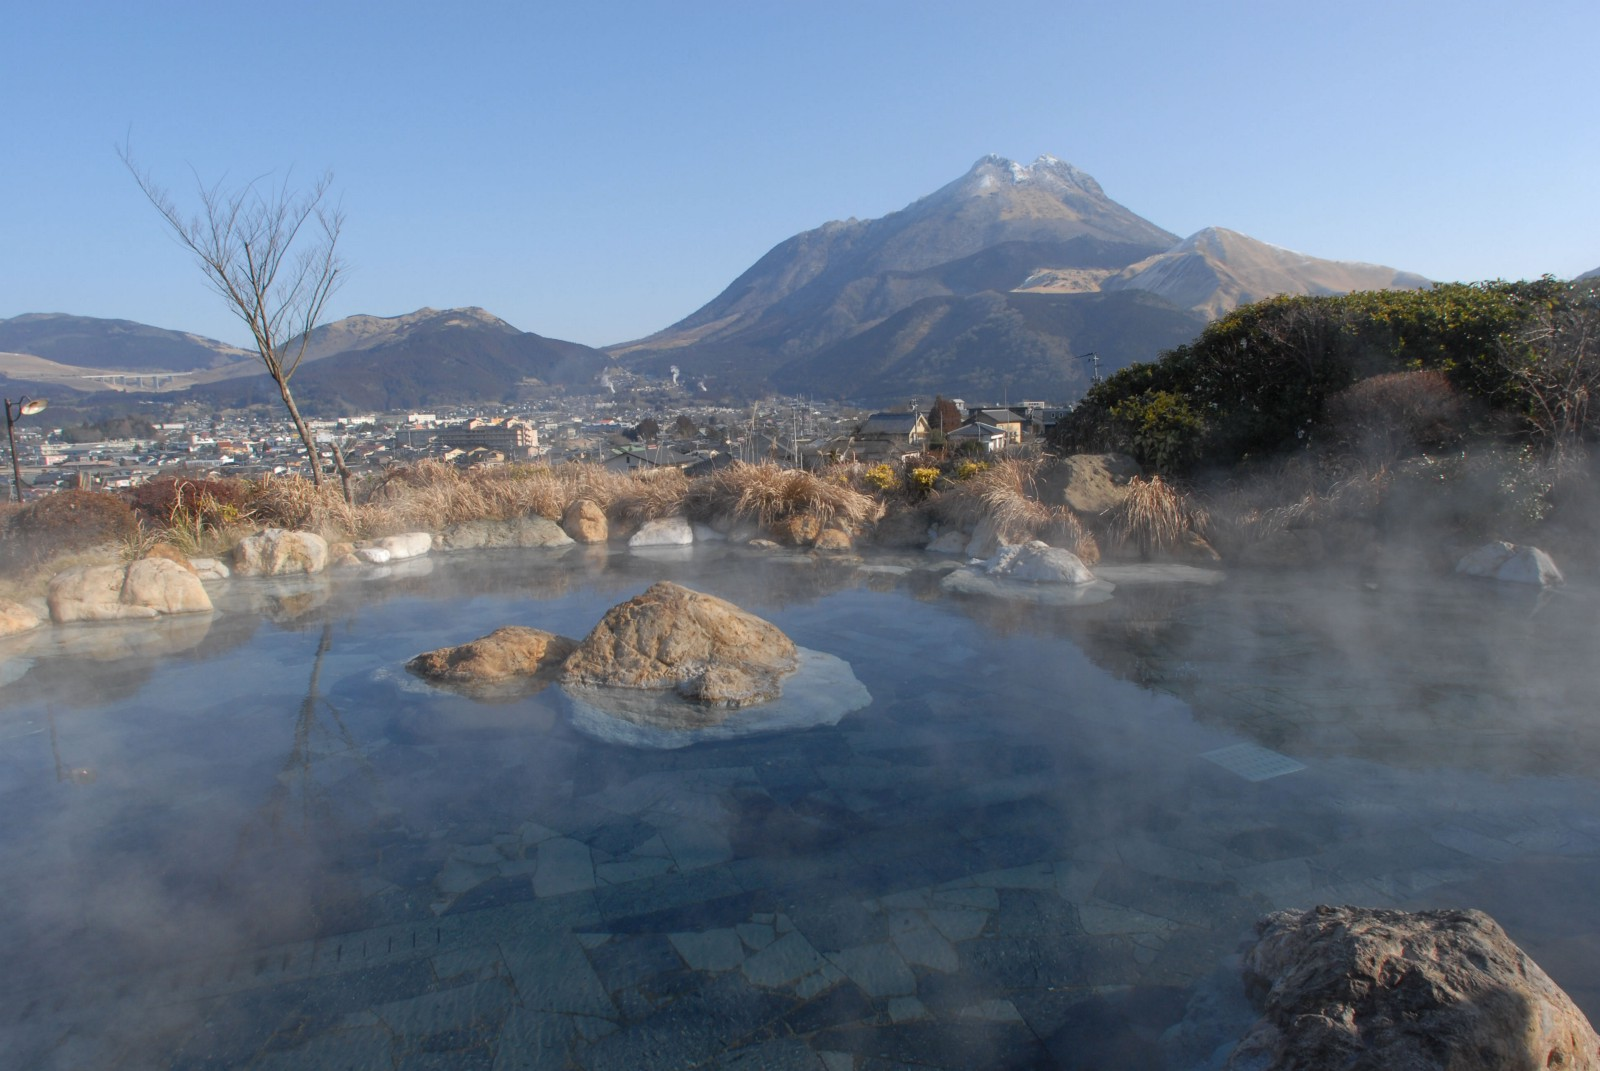 Japan Onsen Map: Best Japanese Hot Springs – Japan Travel Guide -JW ...